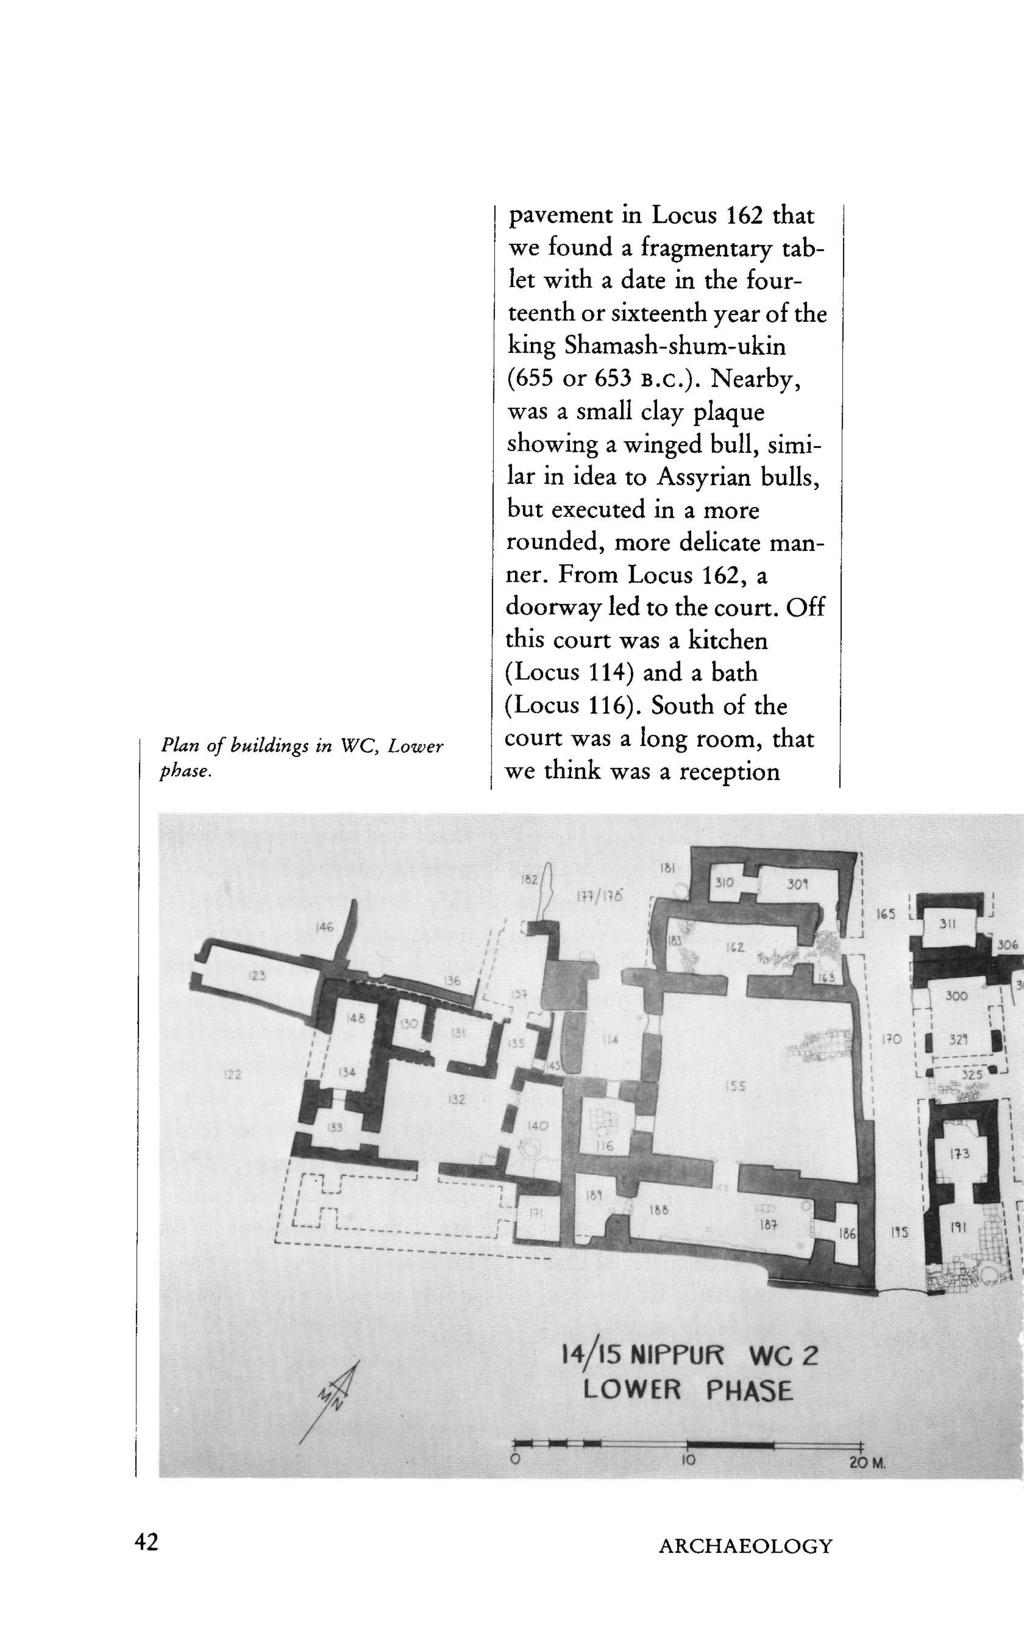 Plan of buildings in WC, Lower phase. pavement in Locus 162 that we found a fragmentary tablet with a date in the fourteenth or sixteenth year of the king Shamash-shum-ukin (655 or 653 B.C.).